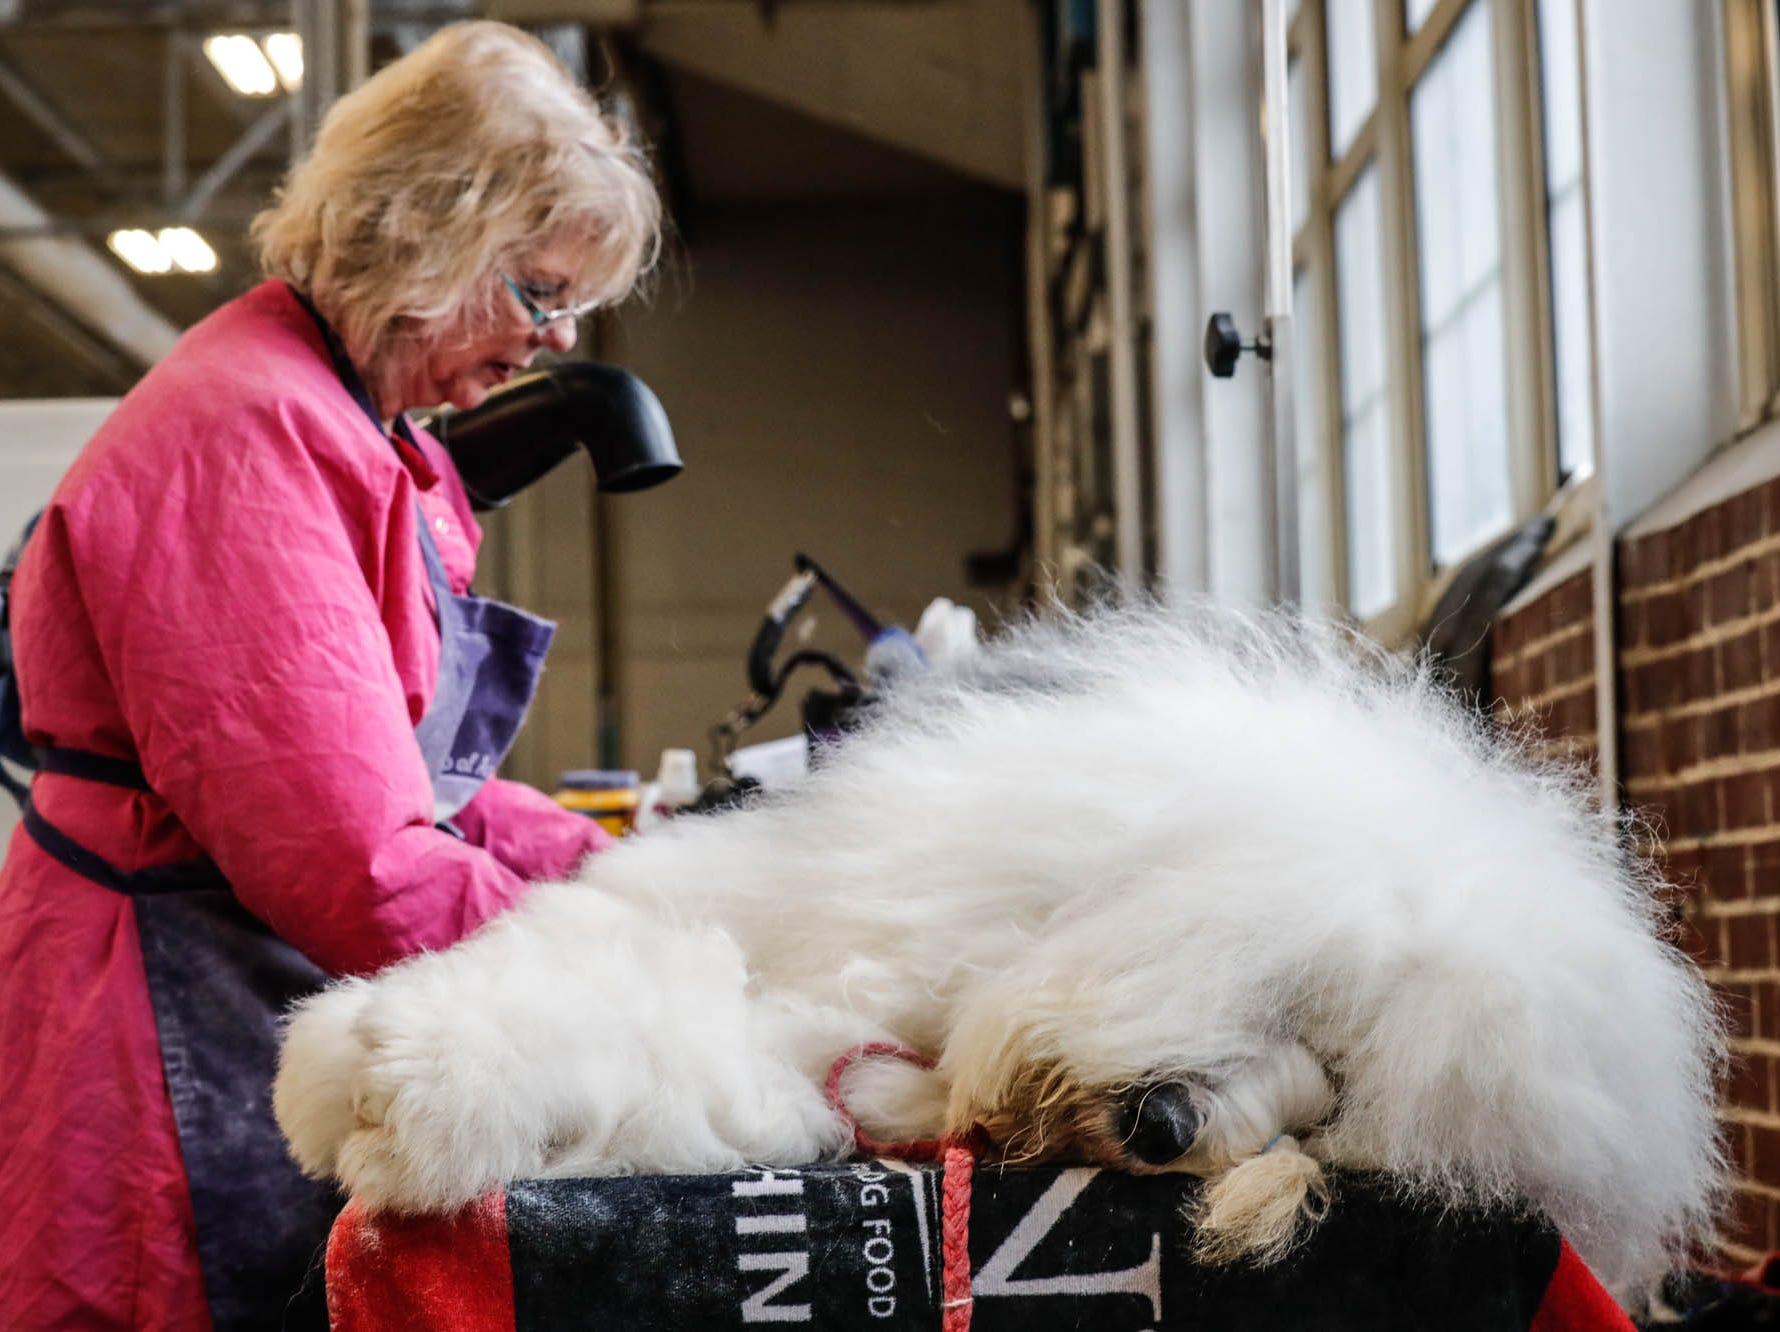 Manhatten and Old English Sheepdog is groomed by Gere Marder during the Indy Winter Classic All Breed Dog Show, held at the Indiana State Fairgrounds on Sunday, Feb. 10, 2019.